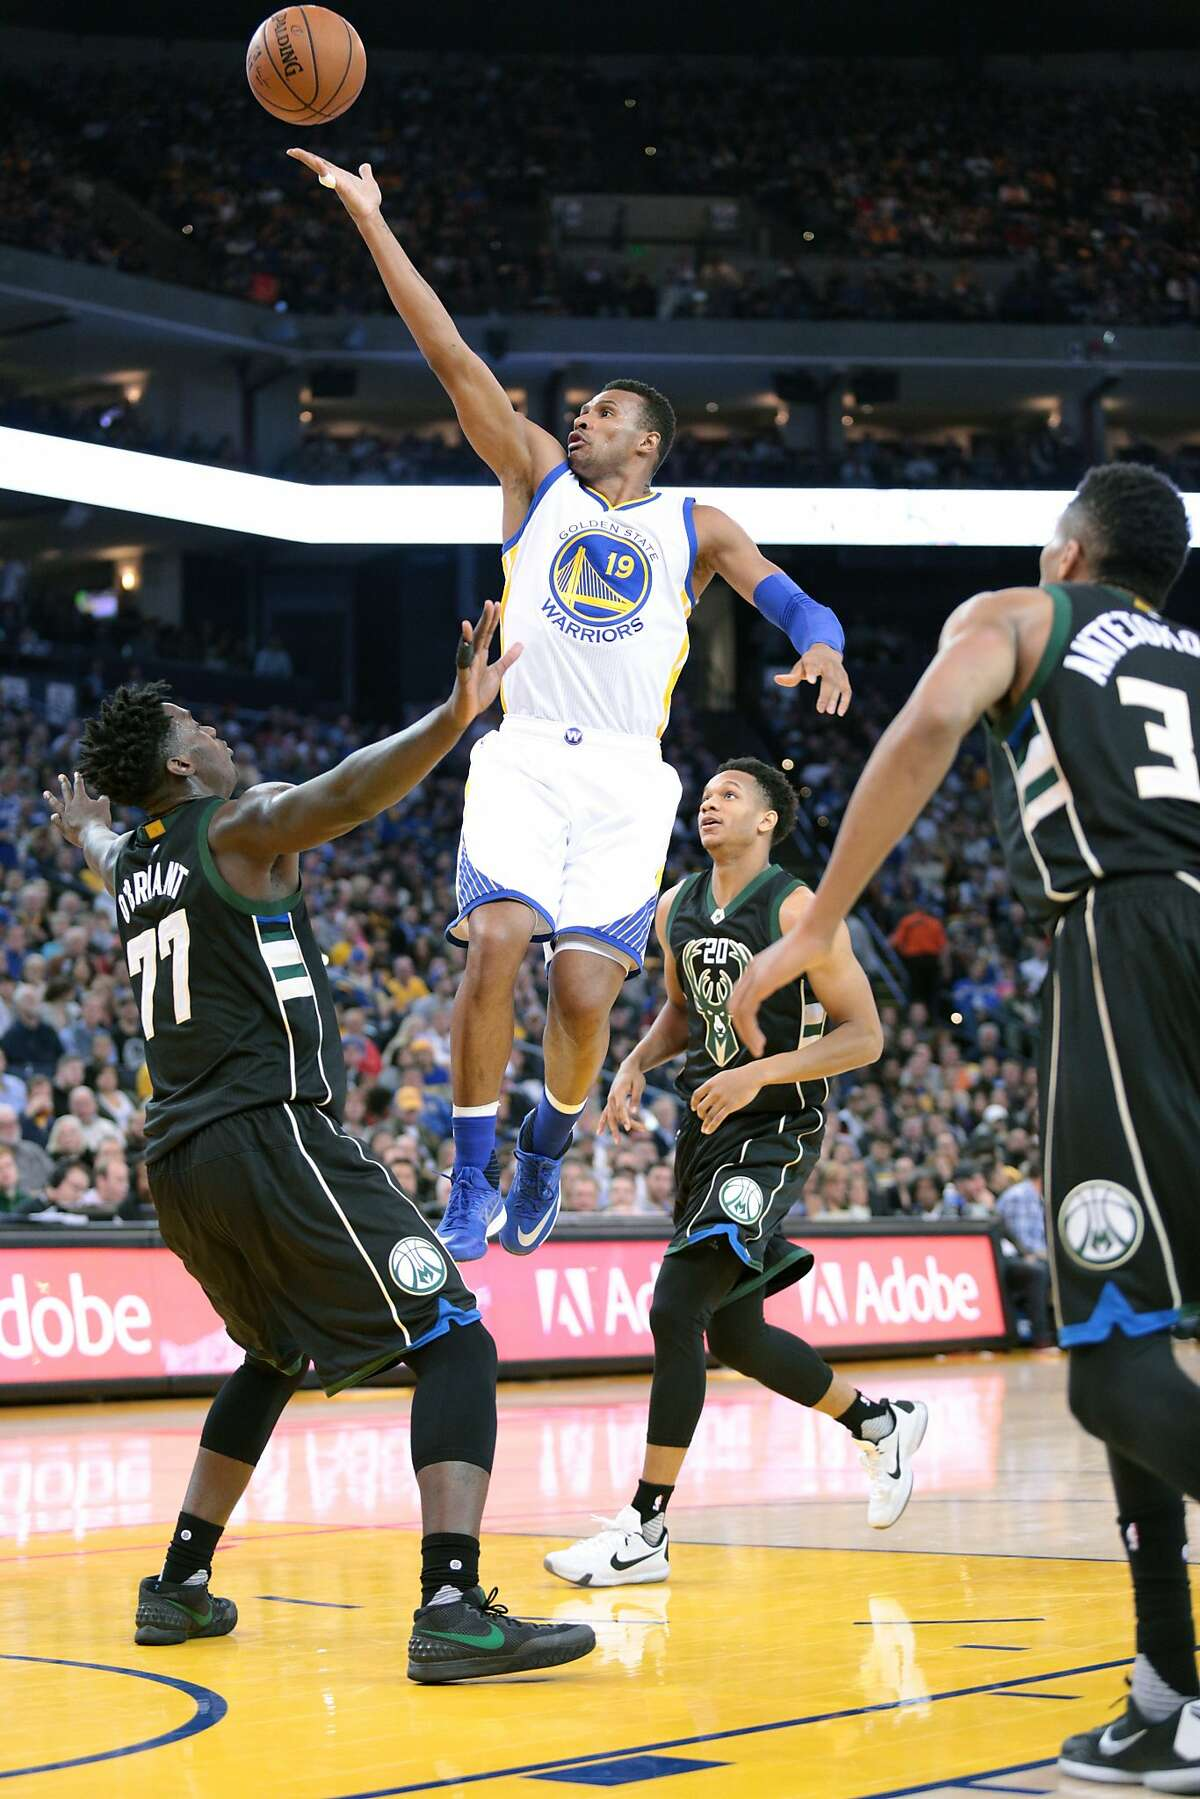 Golden State Warriors guard Leandro Barbosa (19) lays up a shot against Milwaukee Bucks forward Johnny O'Bryant III (77) during the first half of an NBA basketball game, Friday, Dec. 18, 2015, at Oracle Arena in Oakland, Calif.